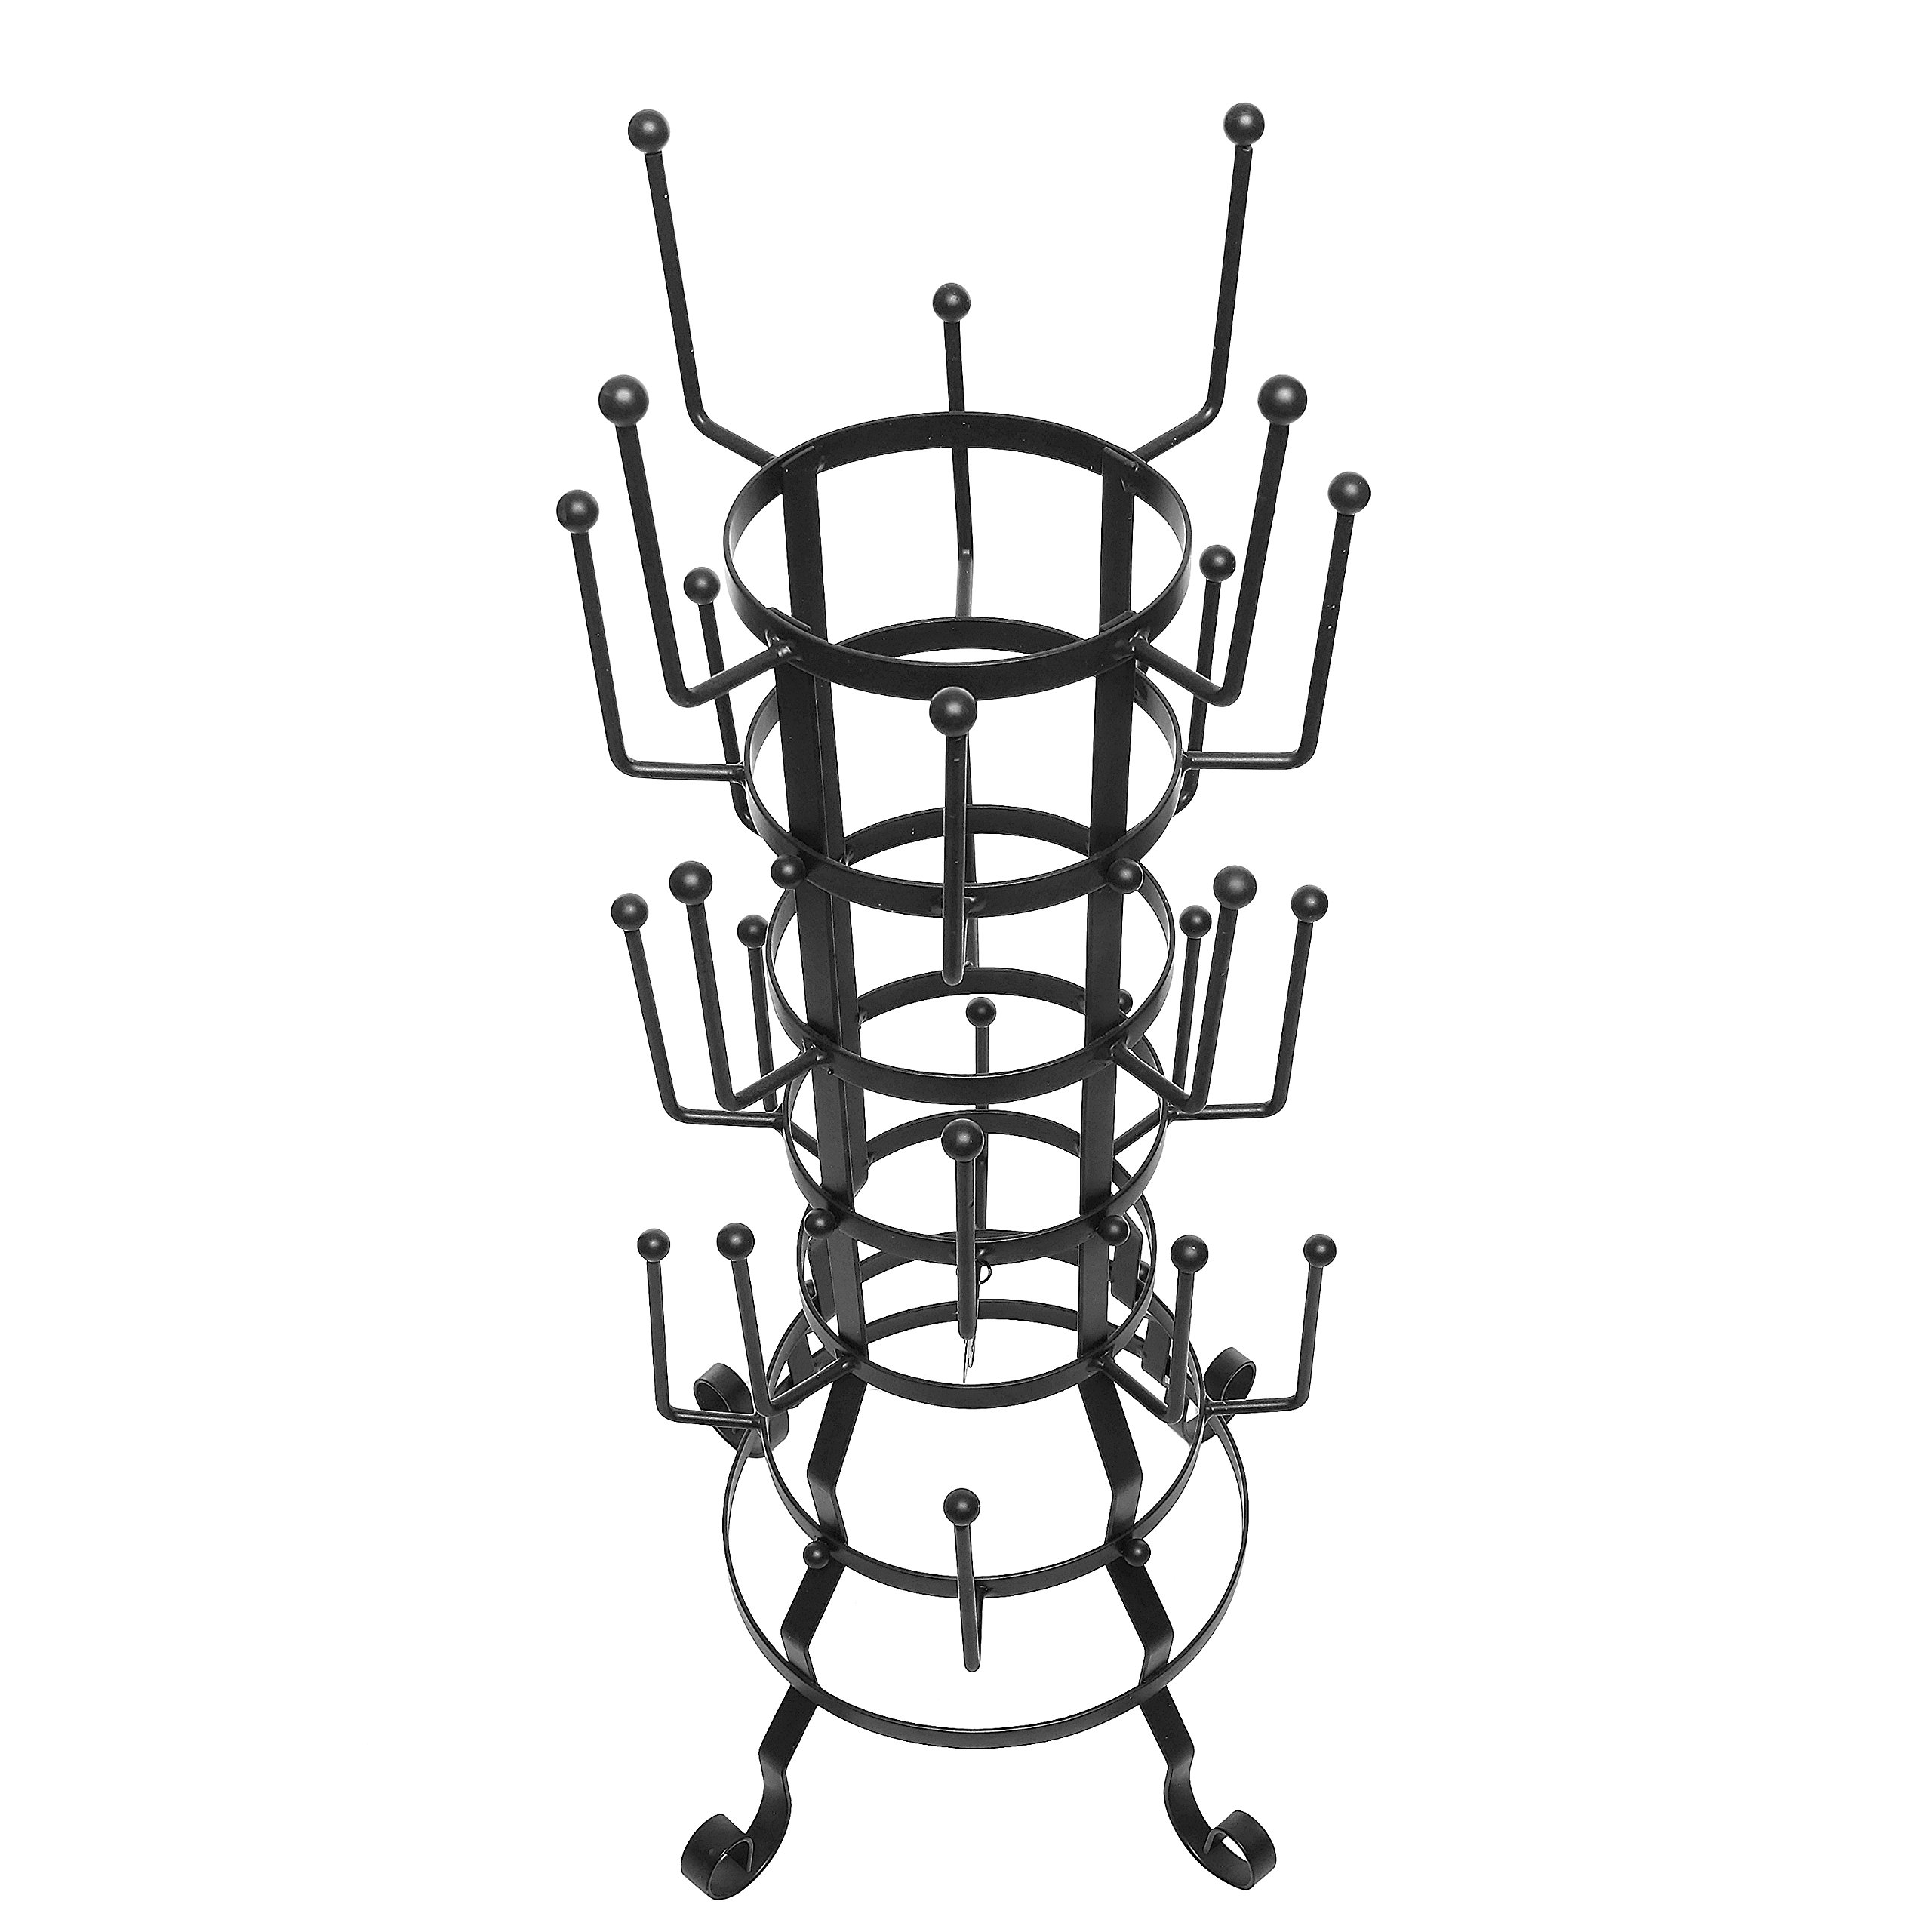 MyGift Vintage Rustic Black Iron Mug/Glass/Cup/Bottle Hanger Hooks Drying Rack Organizer Stand by MyGift (Image #4)